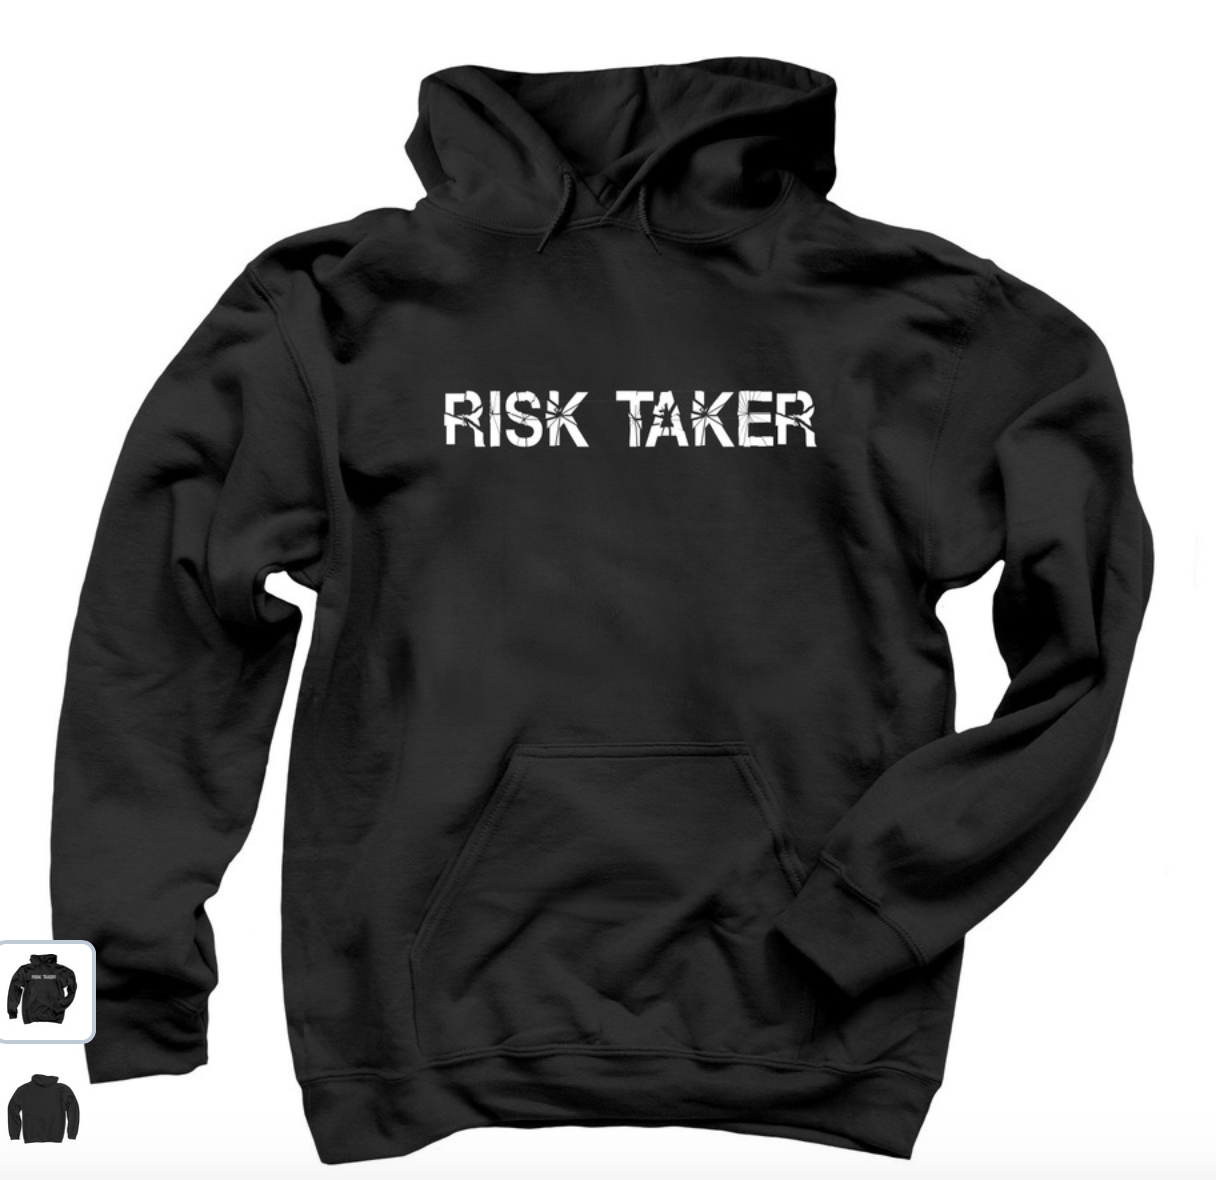 New RISK TAKER Swag!